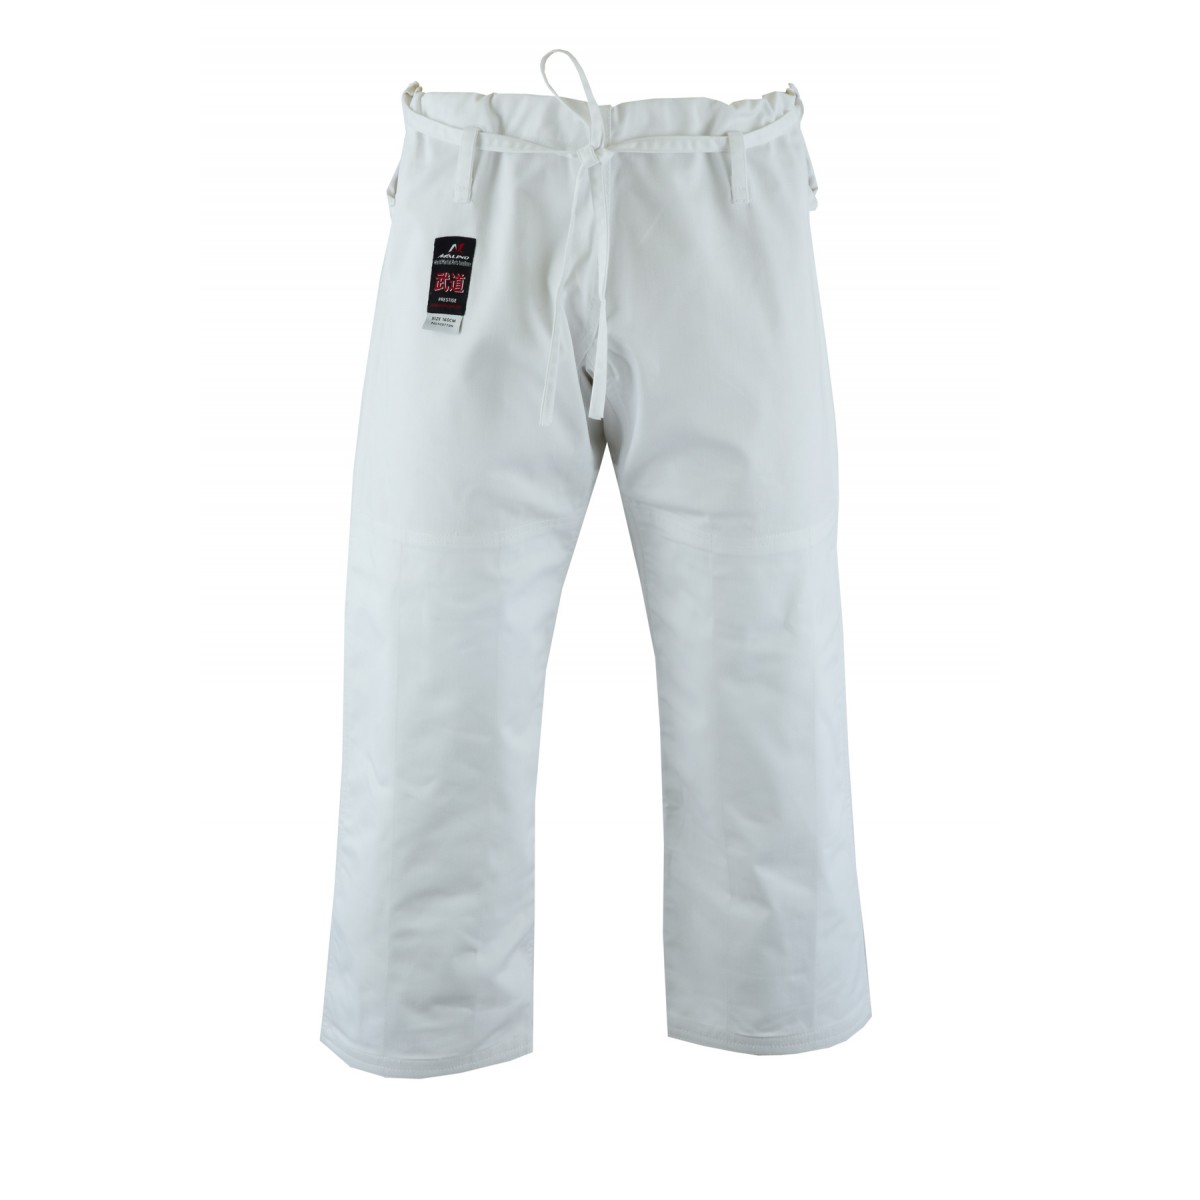 Malino Adult Gold Heavyweight Judo Trousers